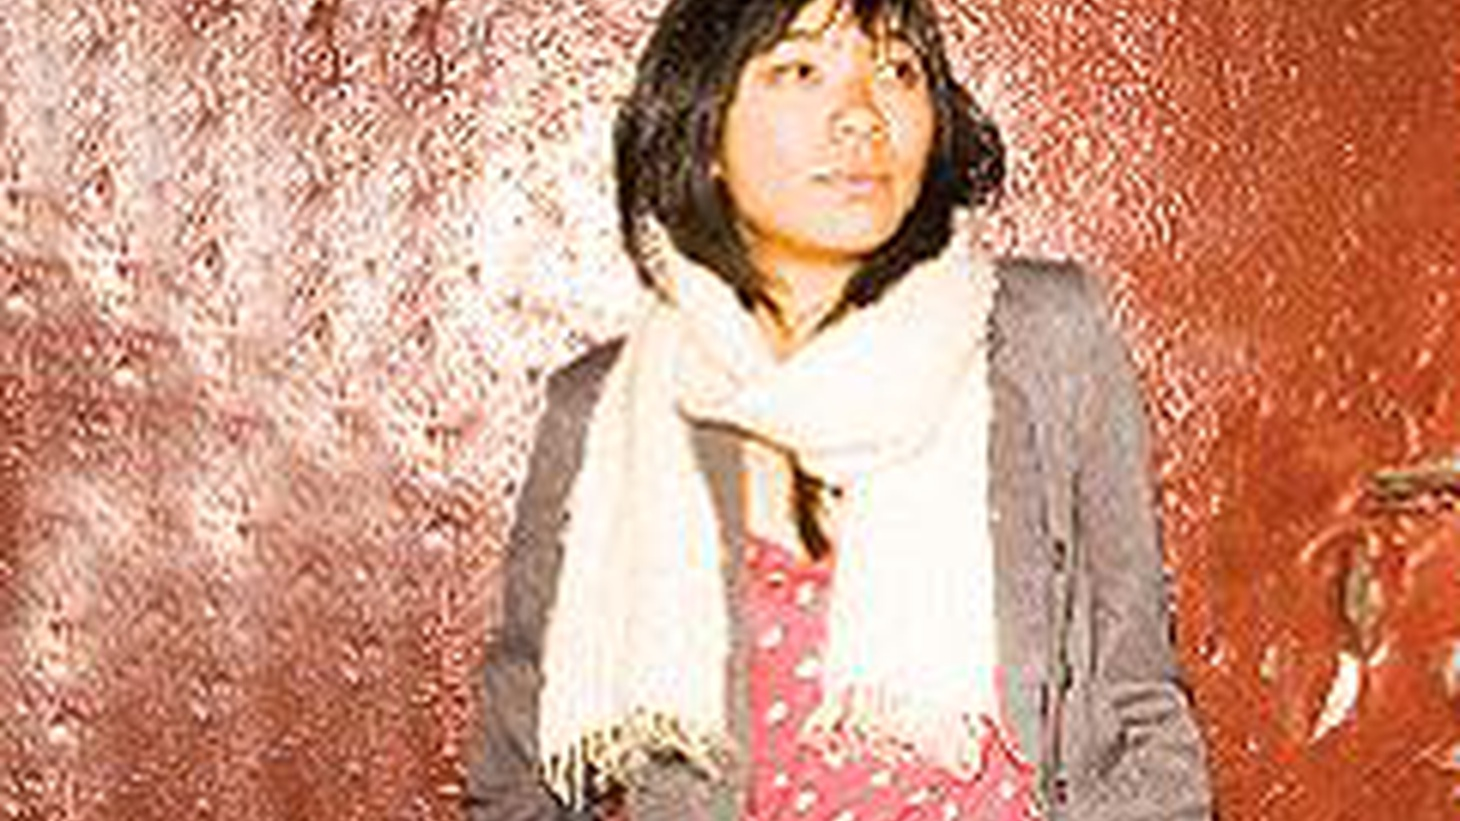 Virginia-bred songwriter Thao showcases her skillful guitar playing and uninhibited style at 11:15am.